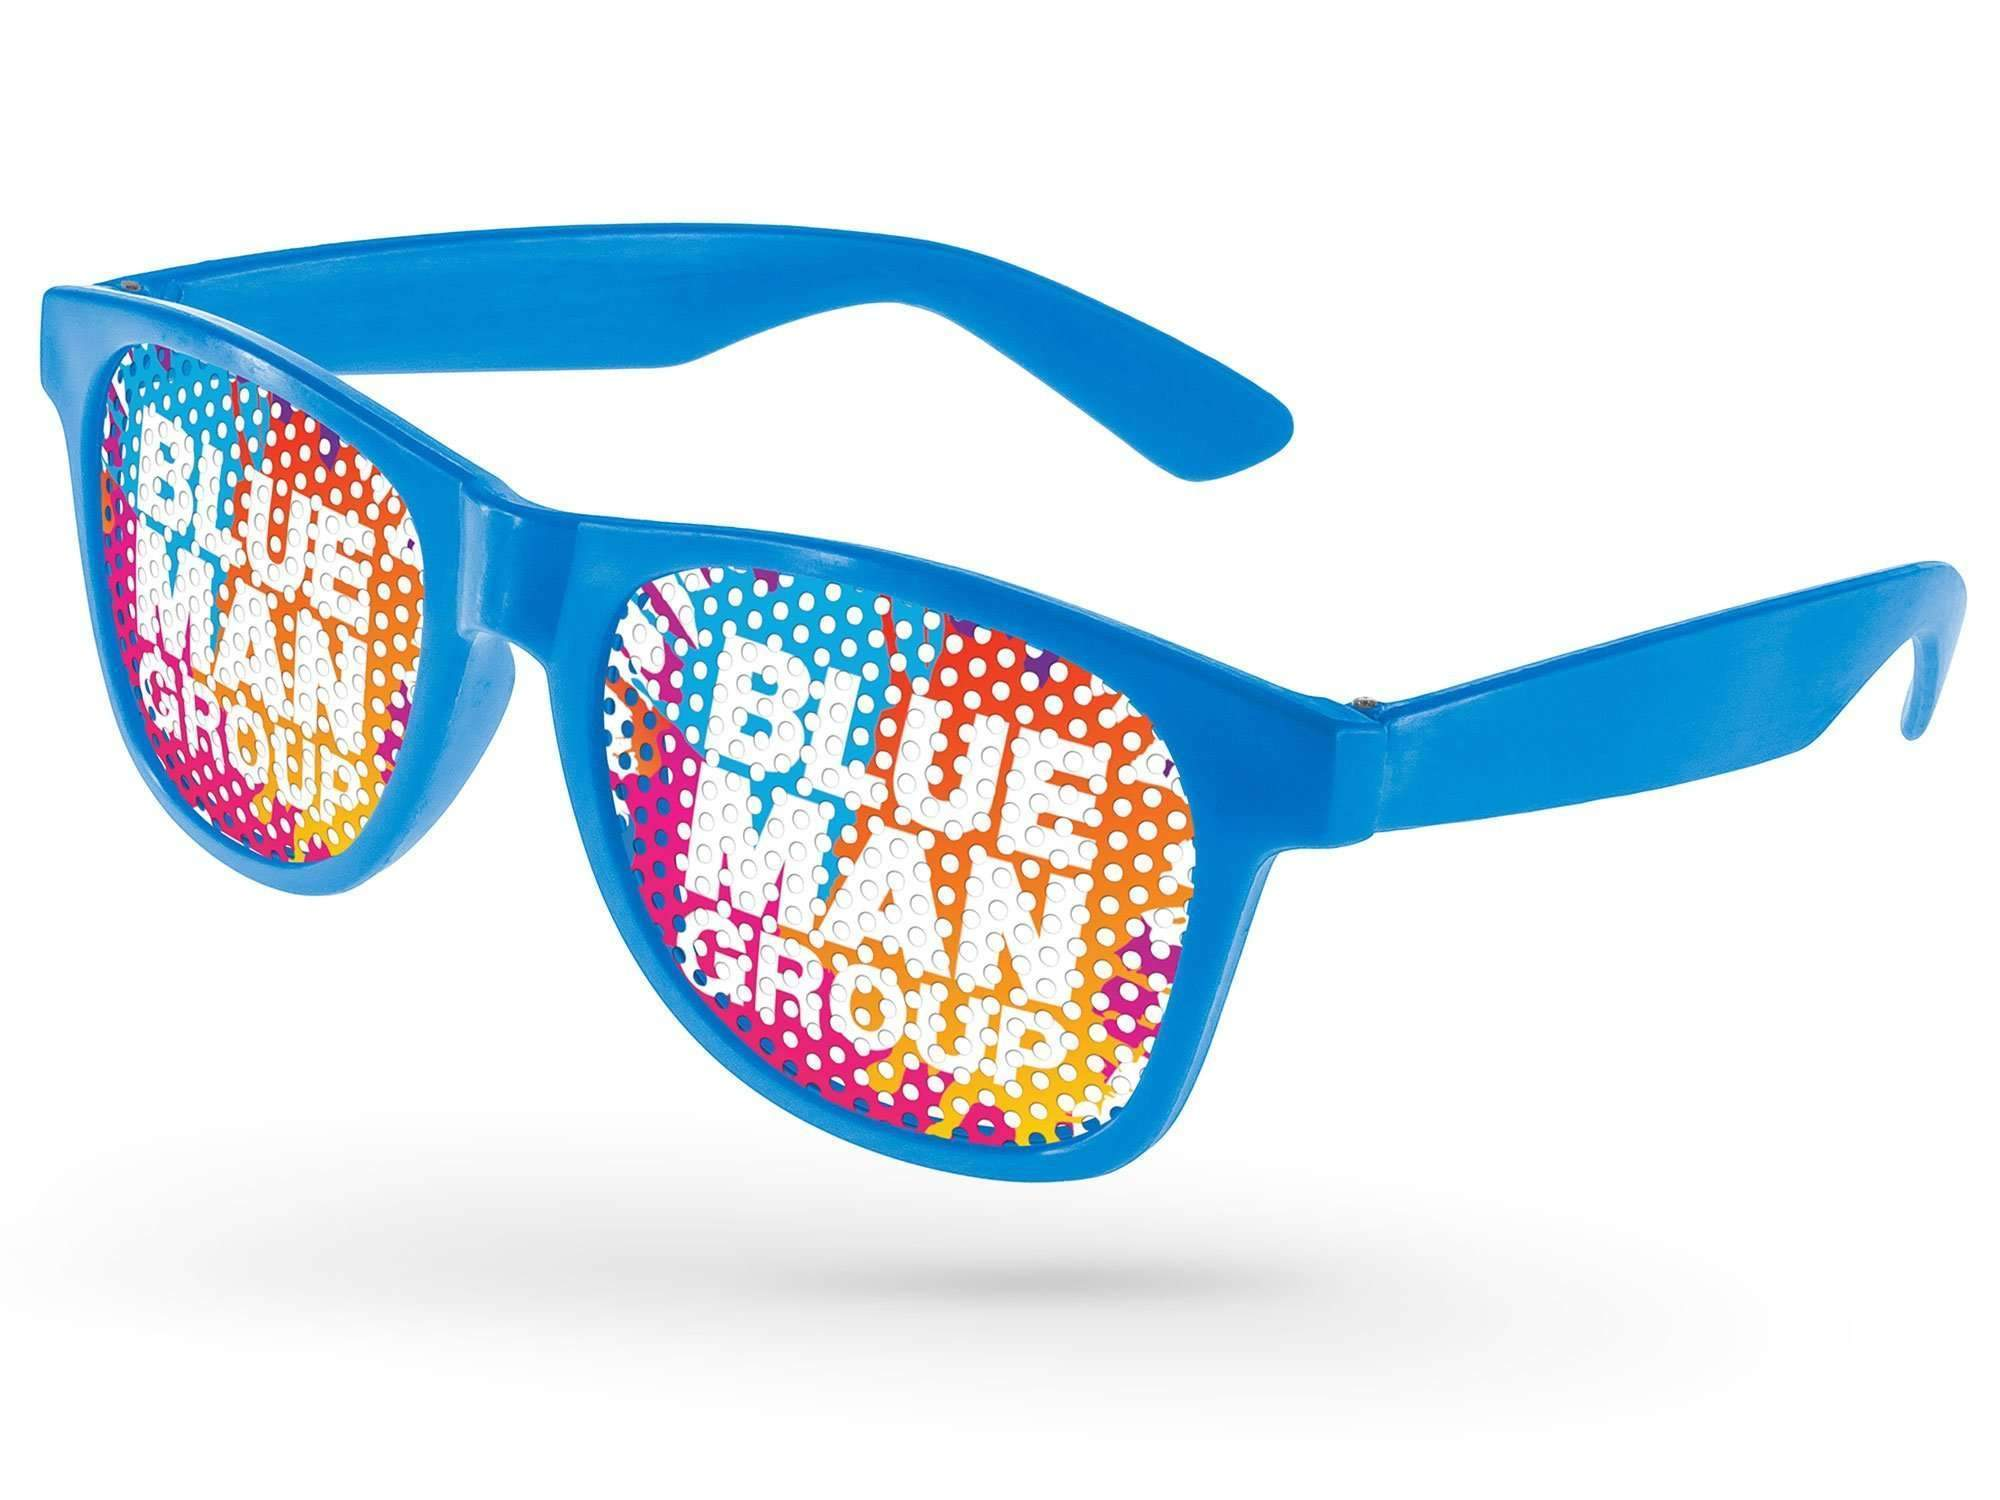 Value Retro Pinhole Promotional Sunglasses